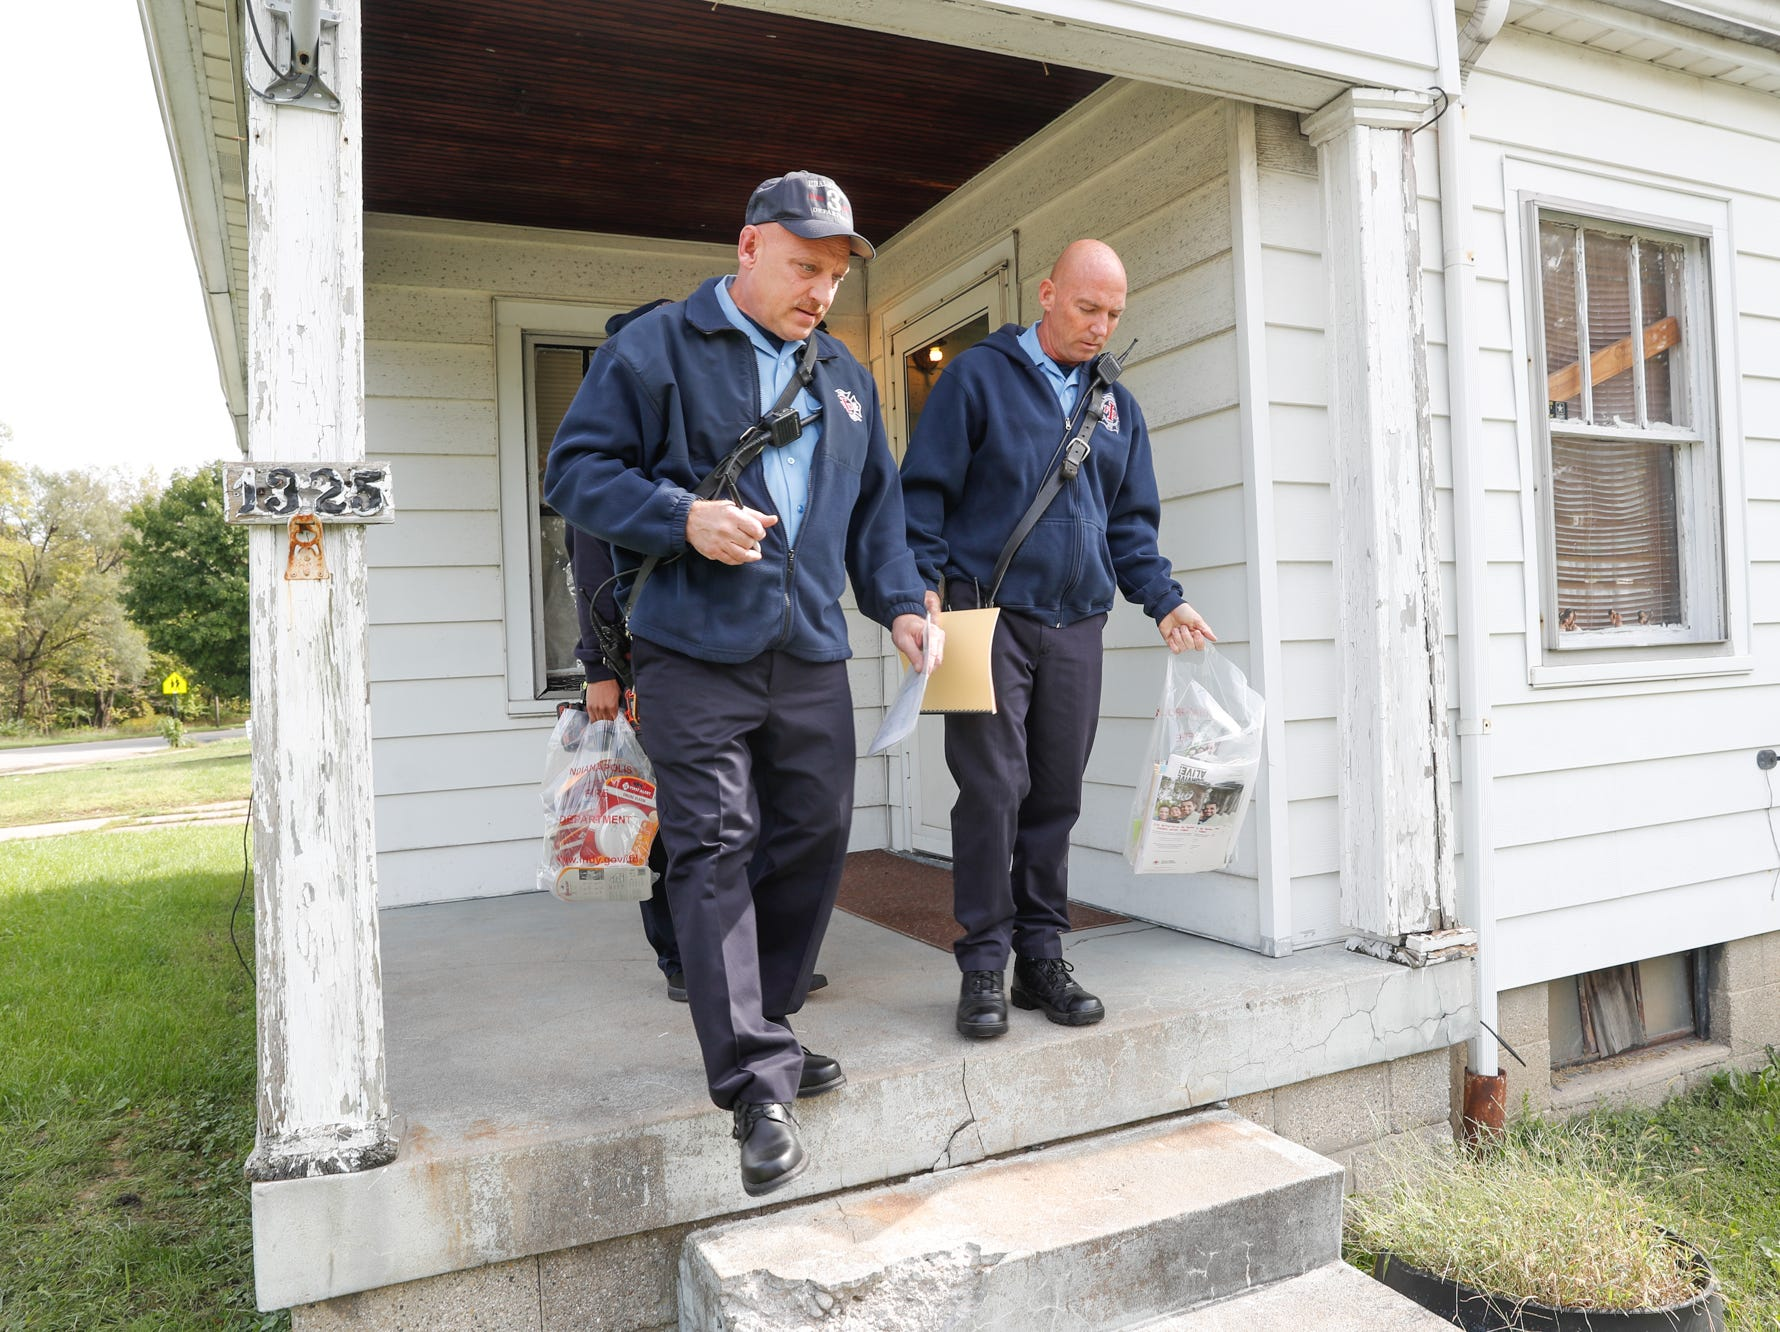 IFD Firefighter Paul Lambert, left, and IFD Firefighter Tim Rumple, right, go door to door delivering safety materials including smoke alarms during IFD's home safety blitz in Indianapolis for National Fire Prevention Week, on Friday, October 12, 2018. IFD chose the area around IFD Station 15 which experienced 9 residential fires in 2018 for the blitz.